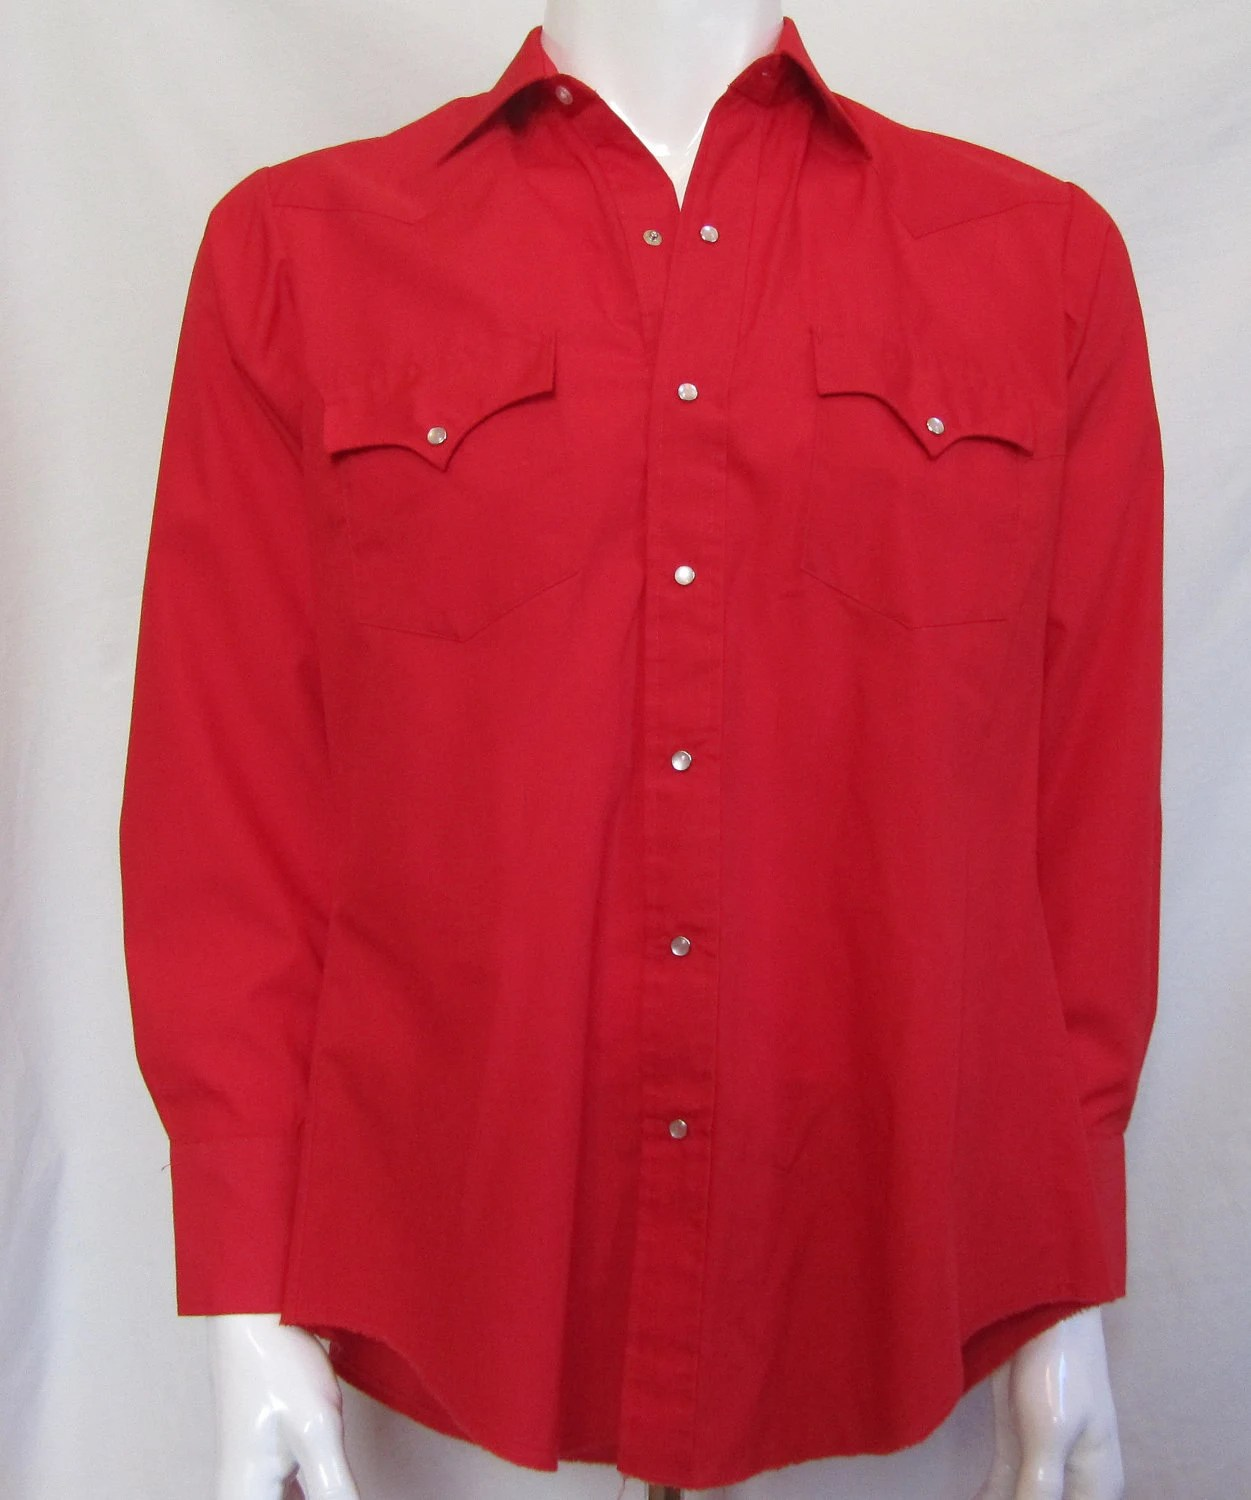 Mens LARGE Ely Plains western shirt, vintage, fire engine red, pearl snaps